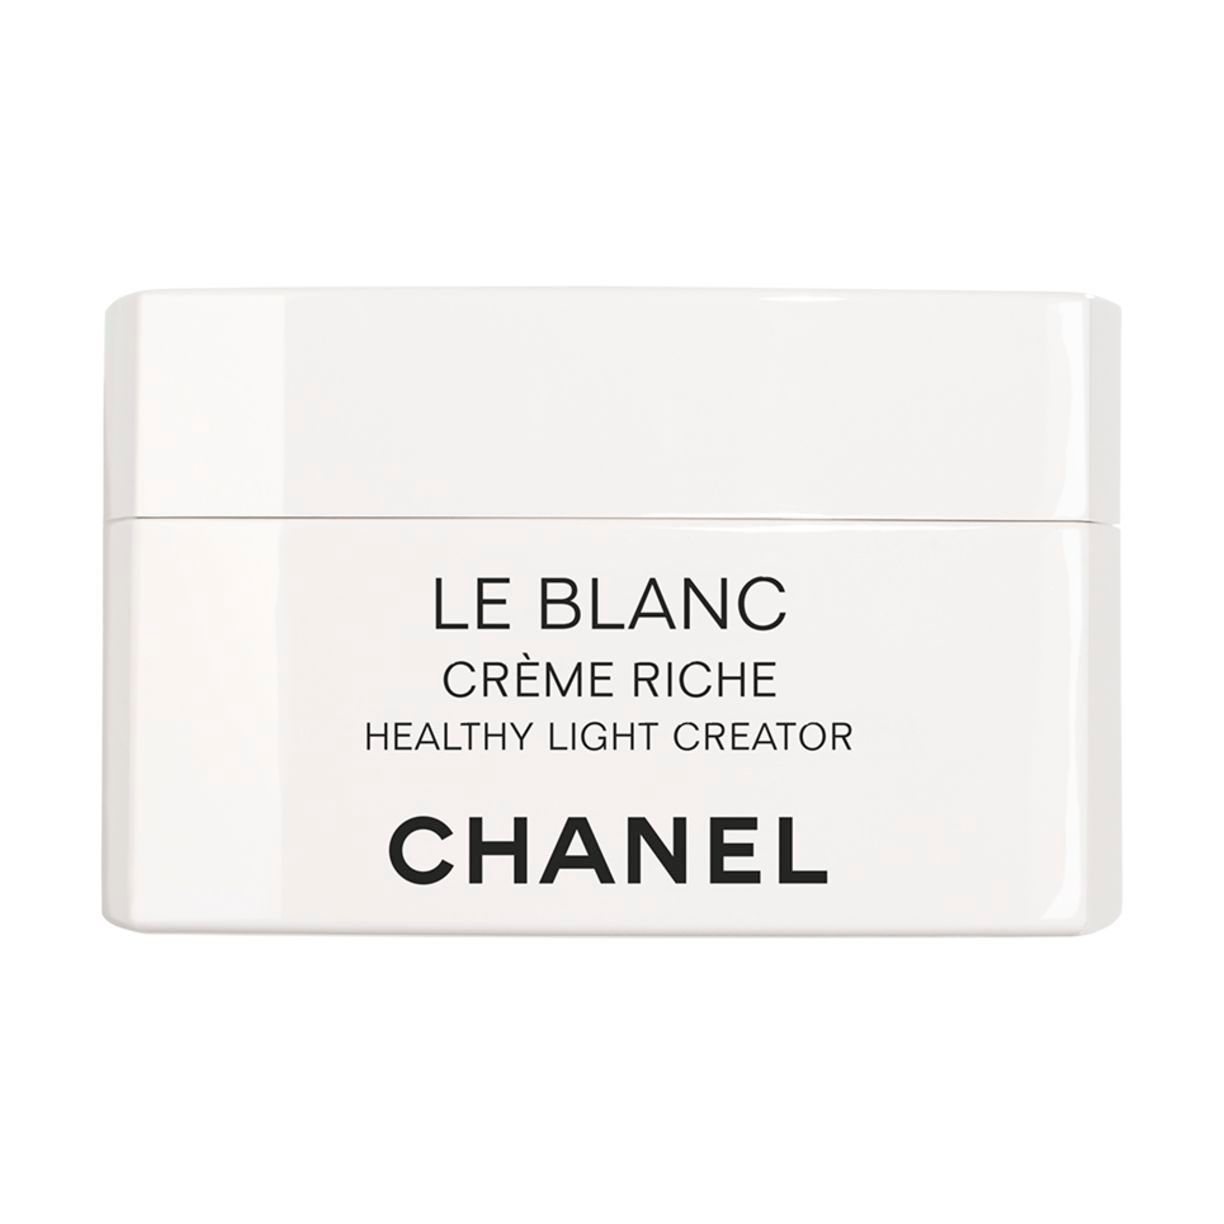 LE BLANC CRÈME RICHE HEALTHY LIGHT CREATOR REVITALISING - WHITENING - RESTORING 50g